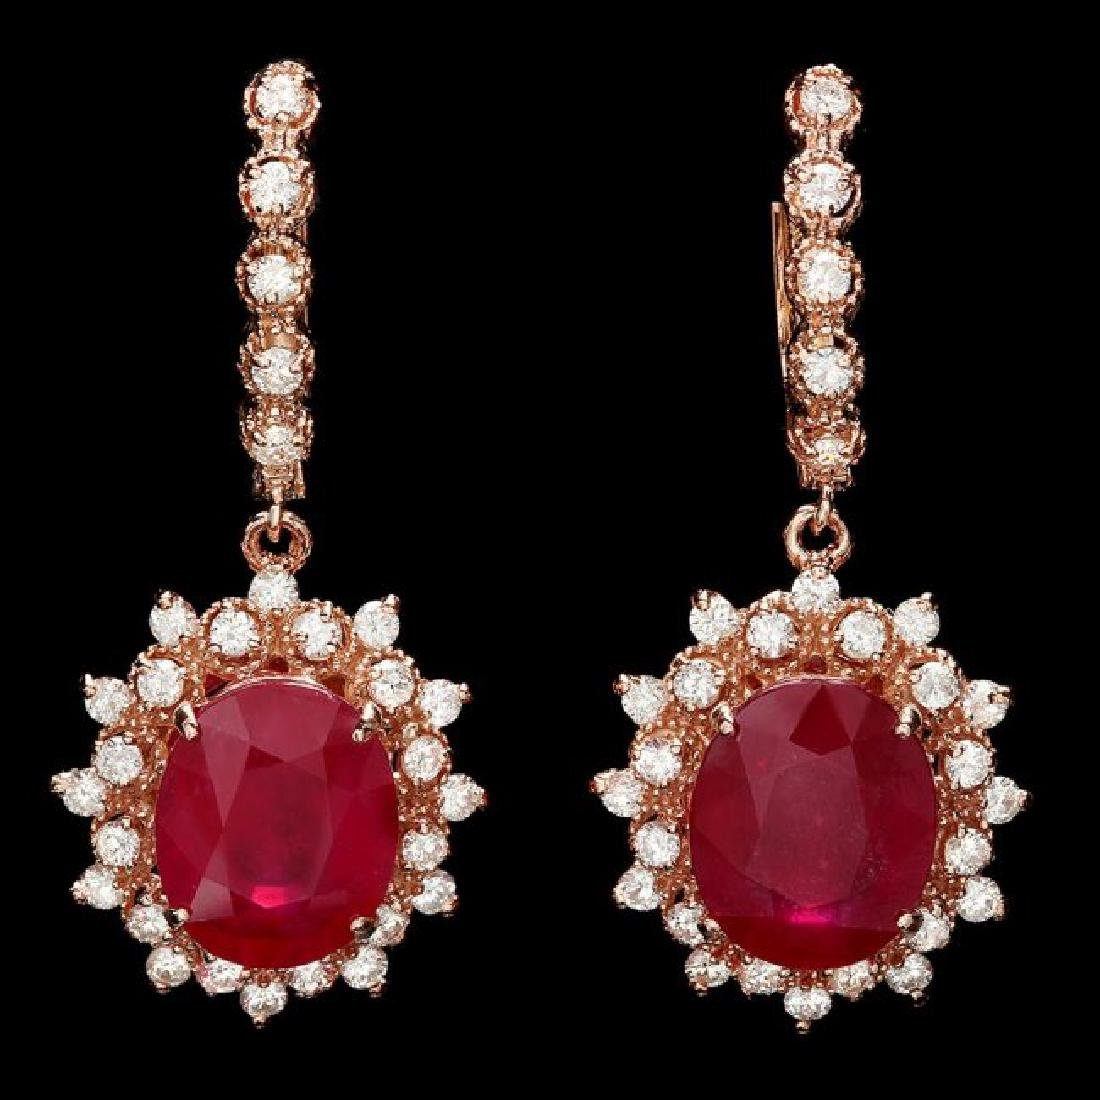 14k Rose 13.50ct Ruby 1.70ct Diamond Earrings